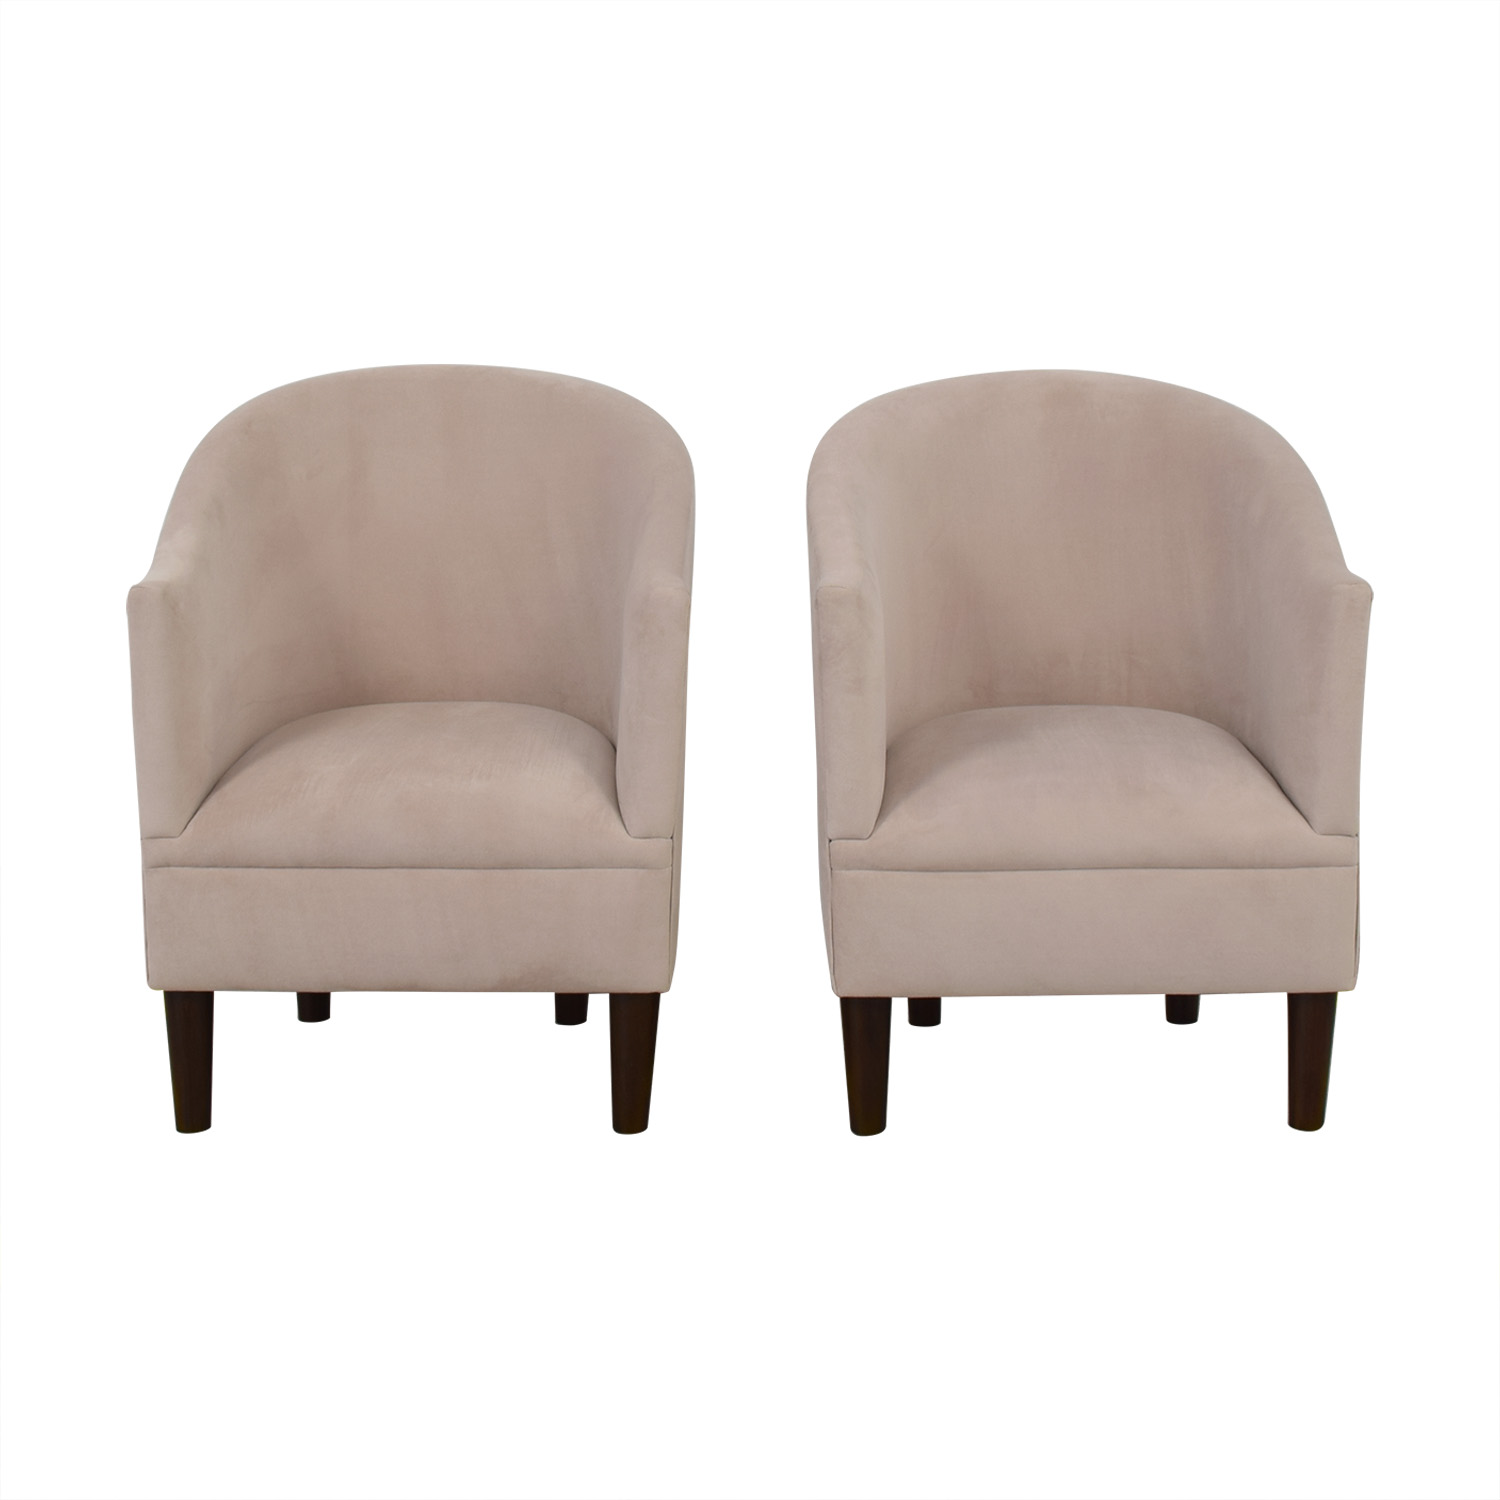 Skyline Furniture Tub Club Chairs sale